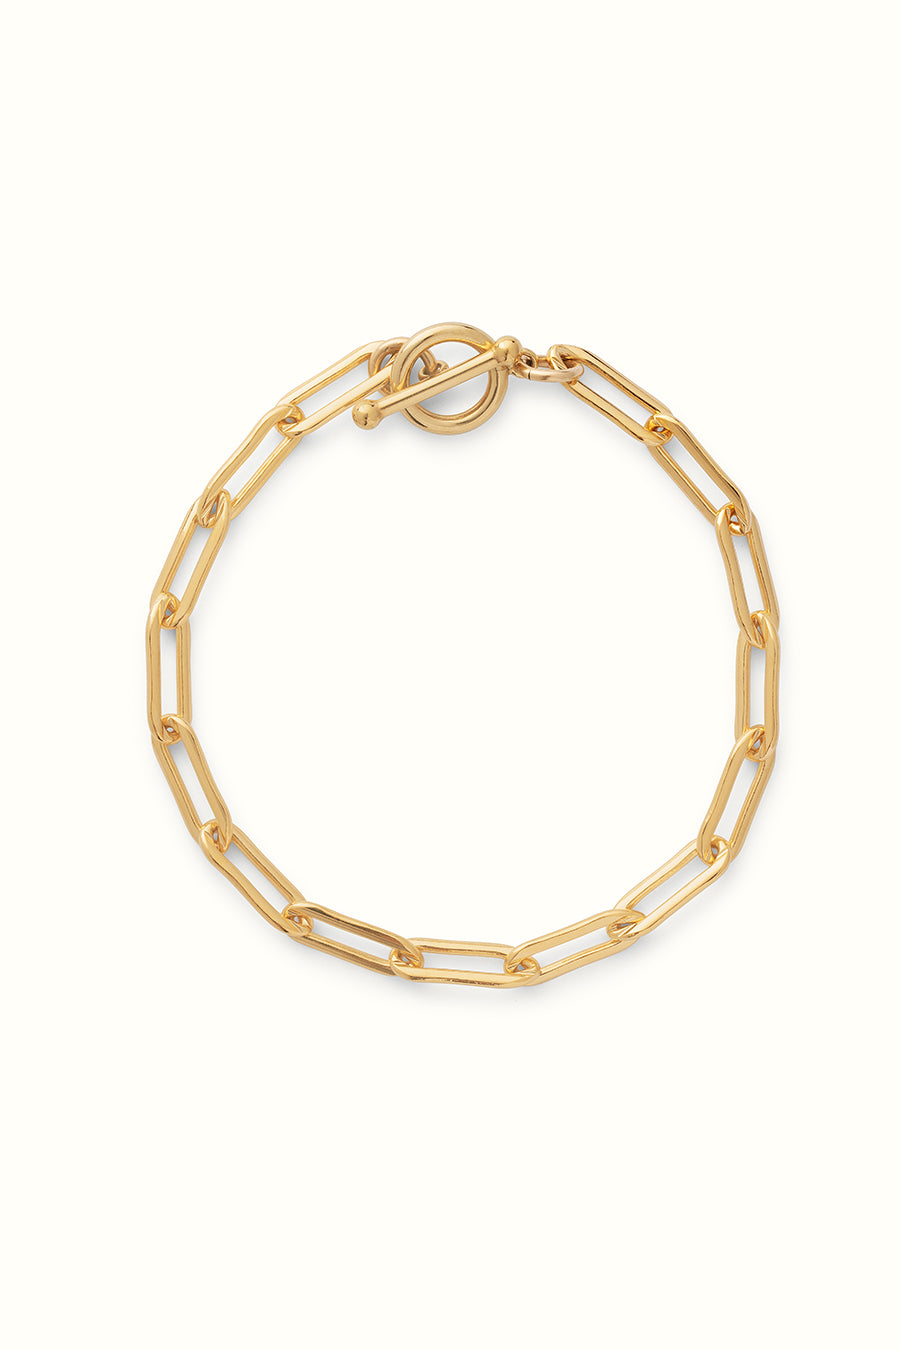 a gold filled chunky paperclip chain bracelet with a toggle clasp on a white background